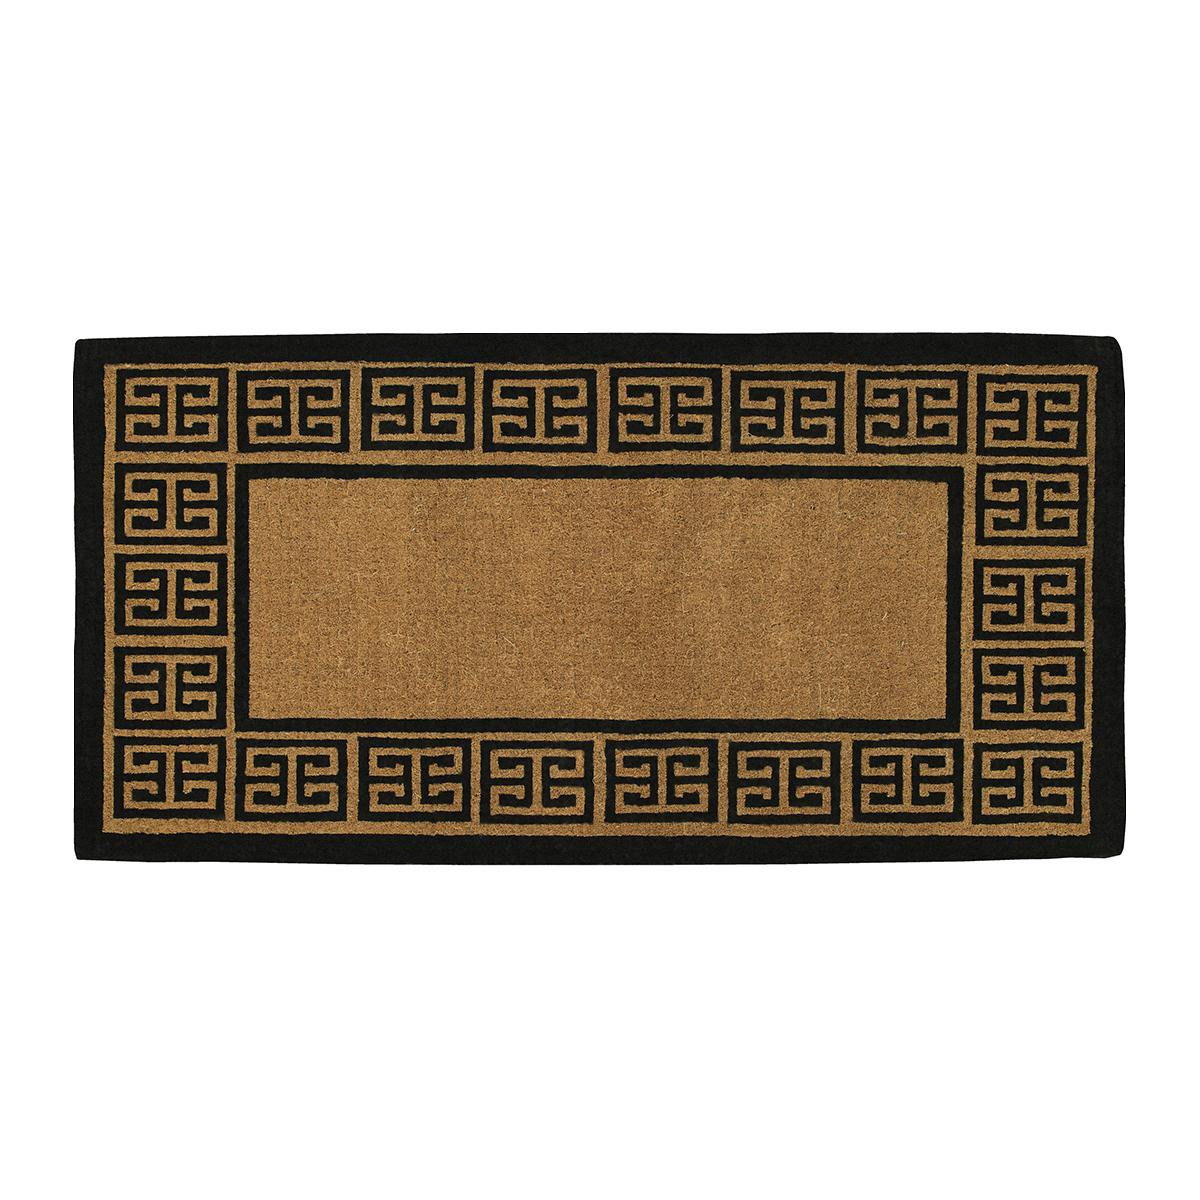 Home & More 18009PLAIN3672 The Grecian Extra-Thick Doormat, 36'' x 72'' x 1.50'', Natural/Black